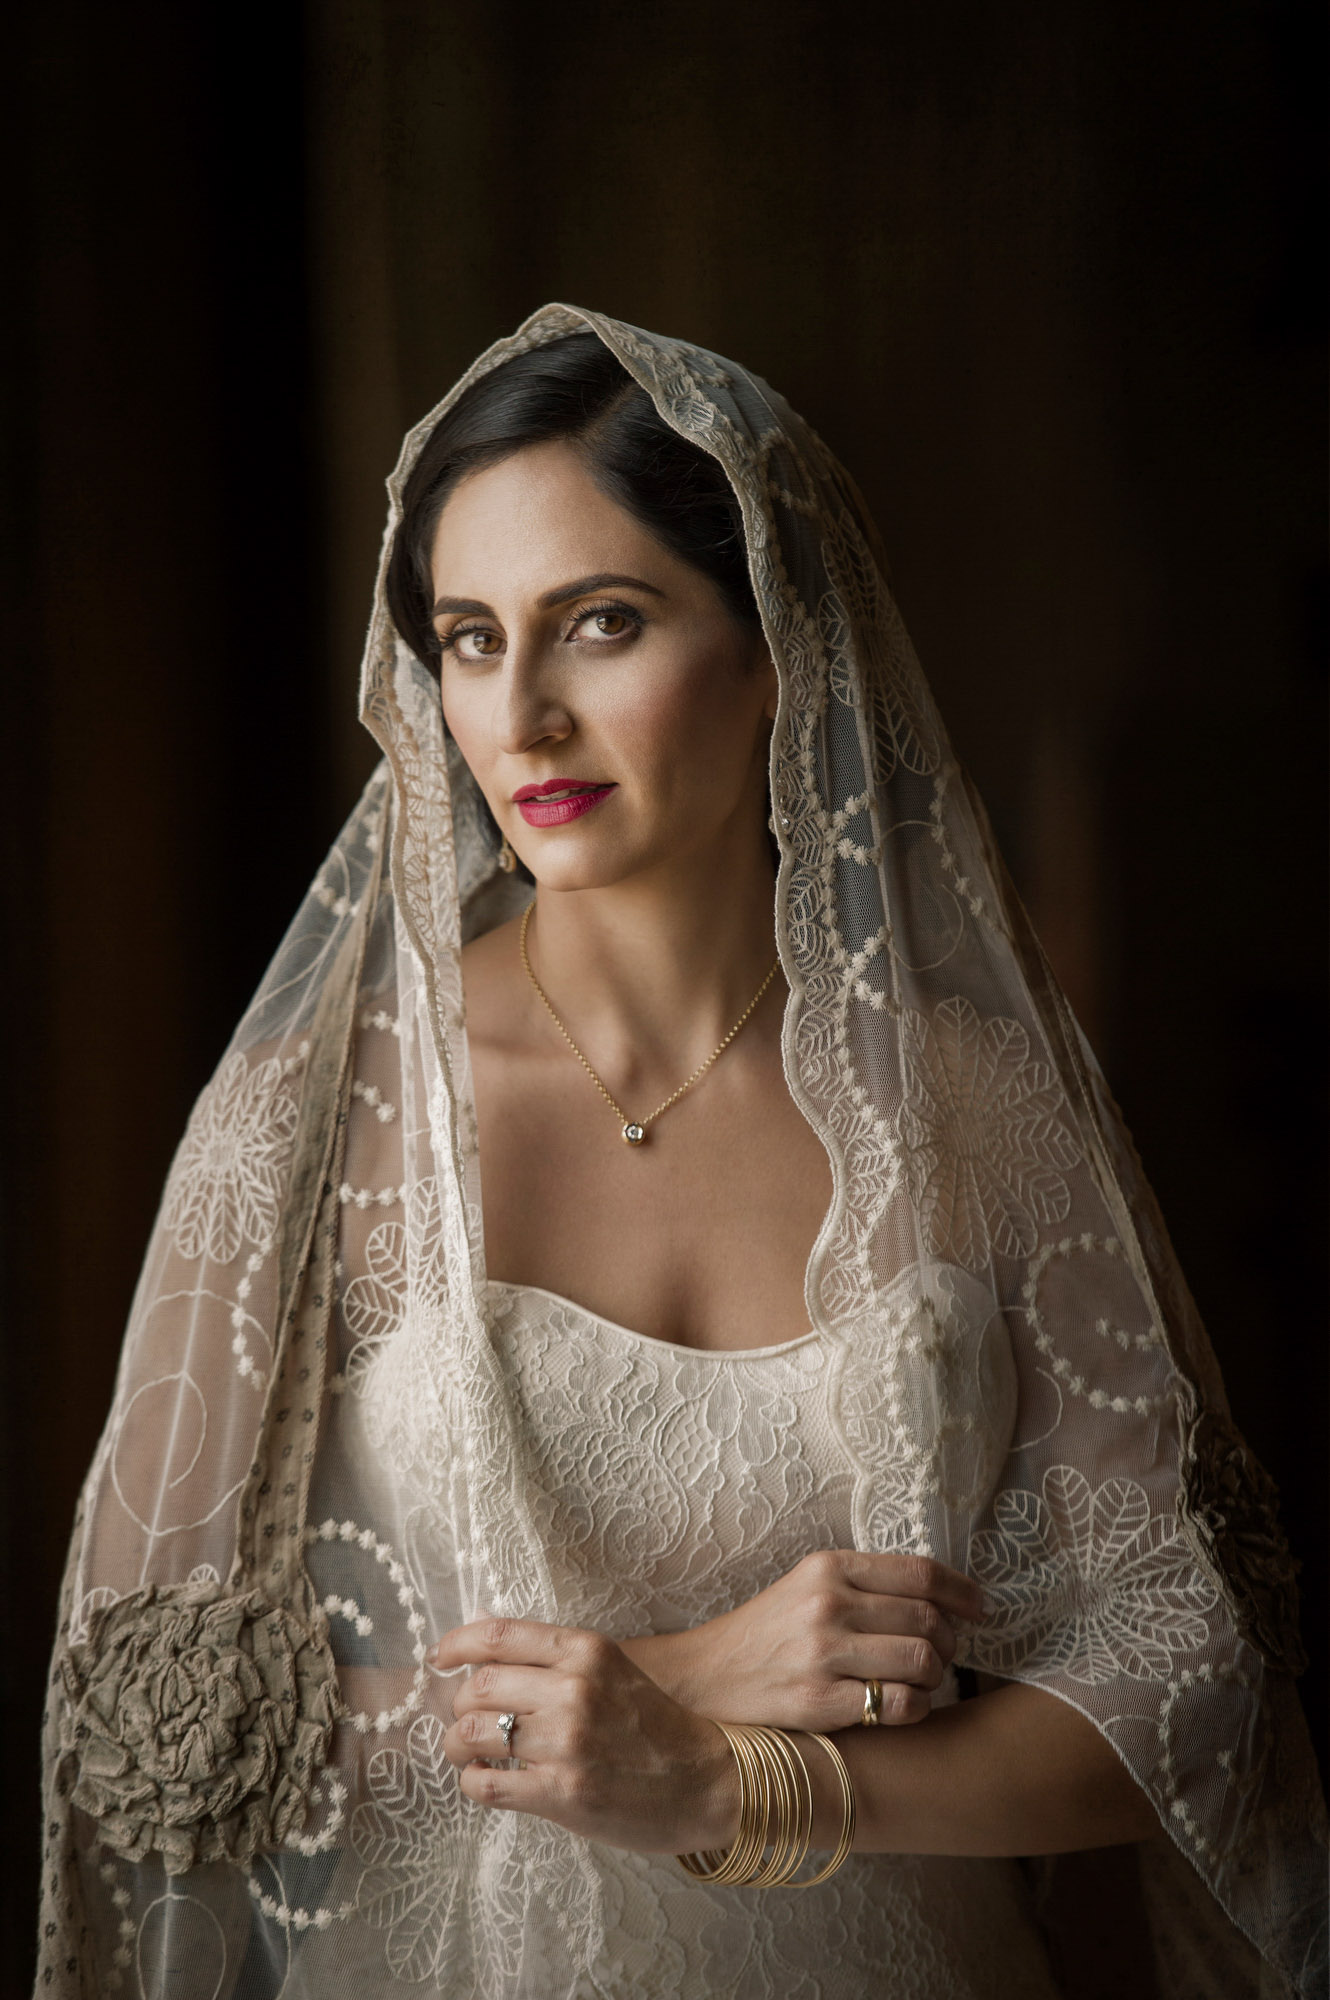 Classic portrait of bride in mantilla veil by Jerry Ghionis